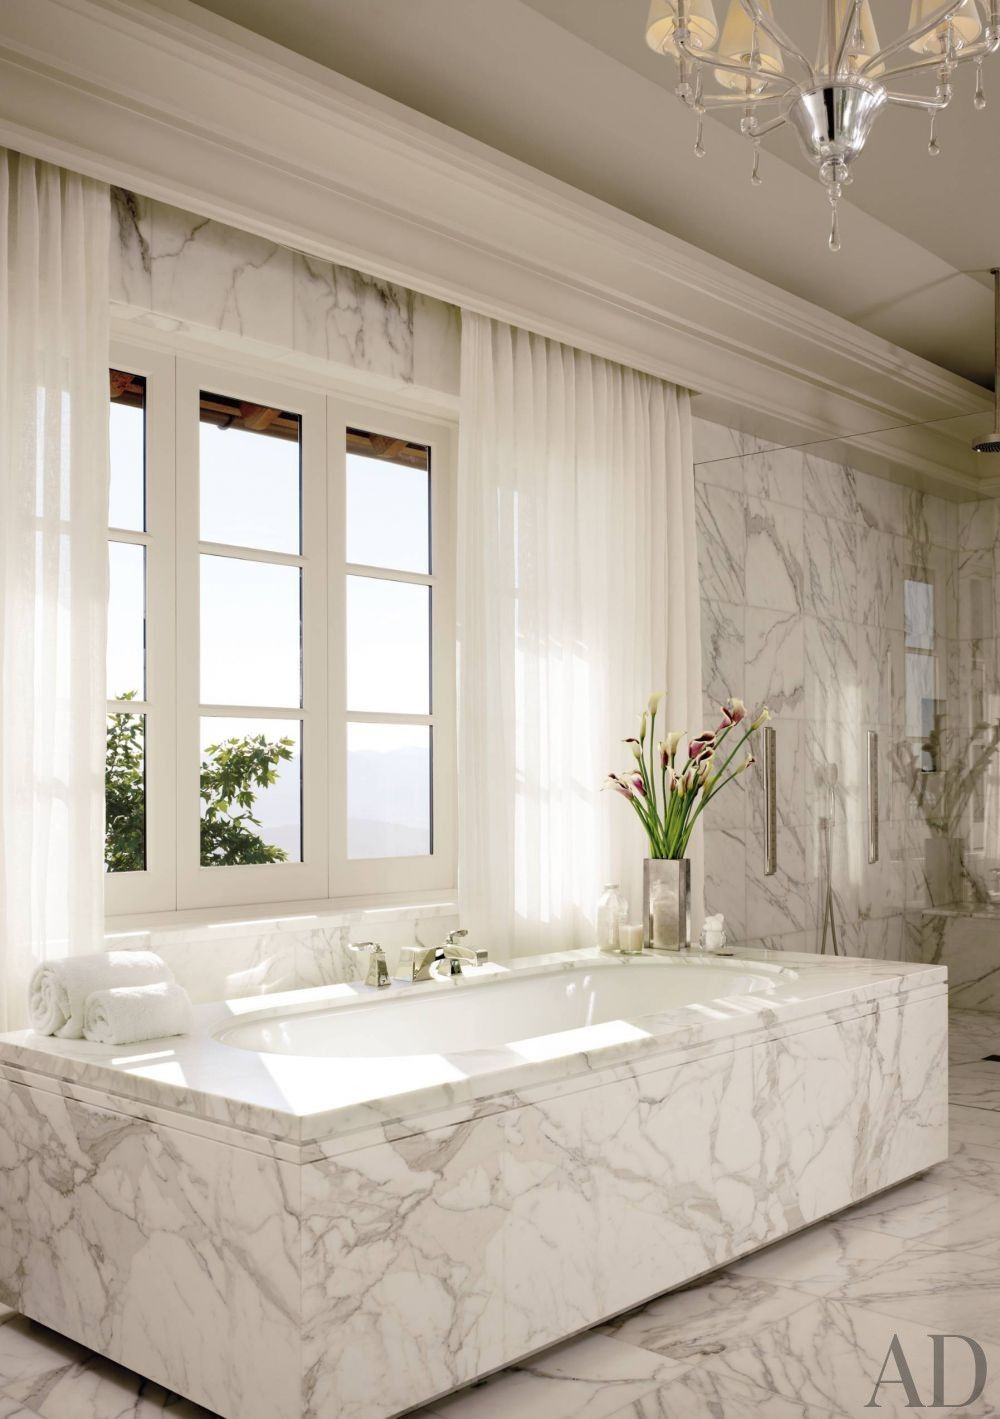 Contemporary bathroom by the wiseman group and bar architects in